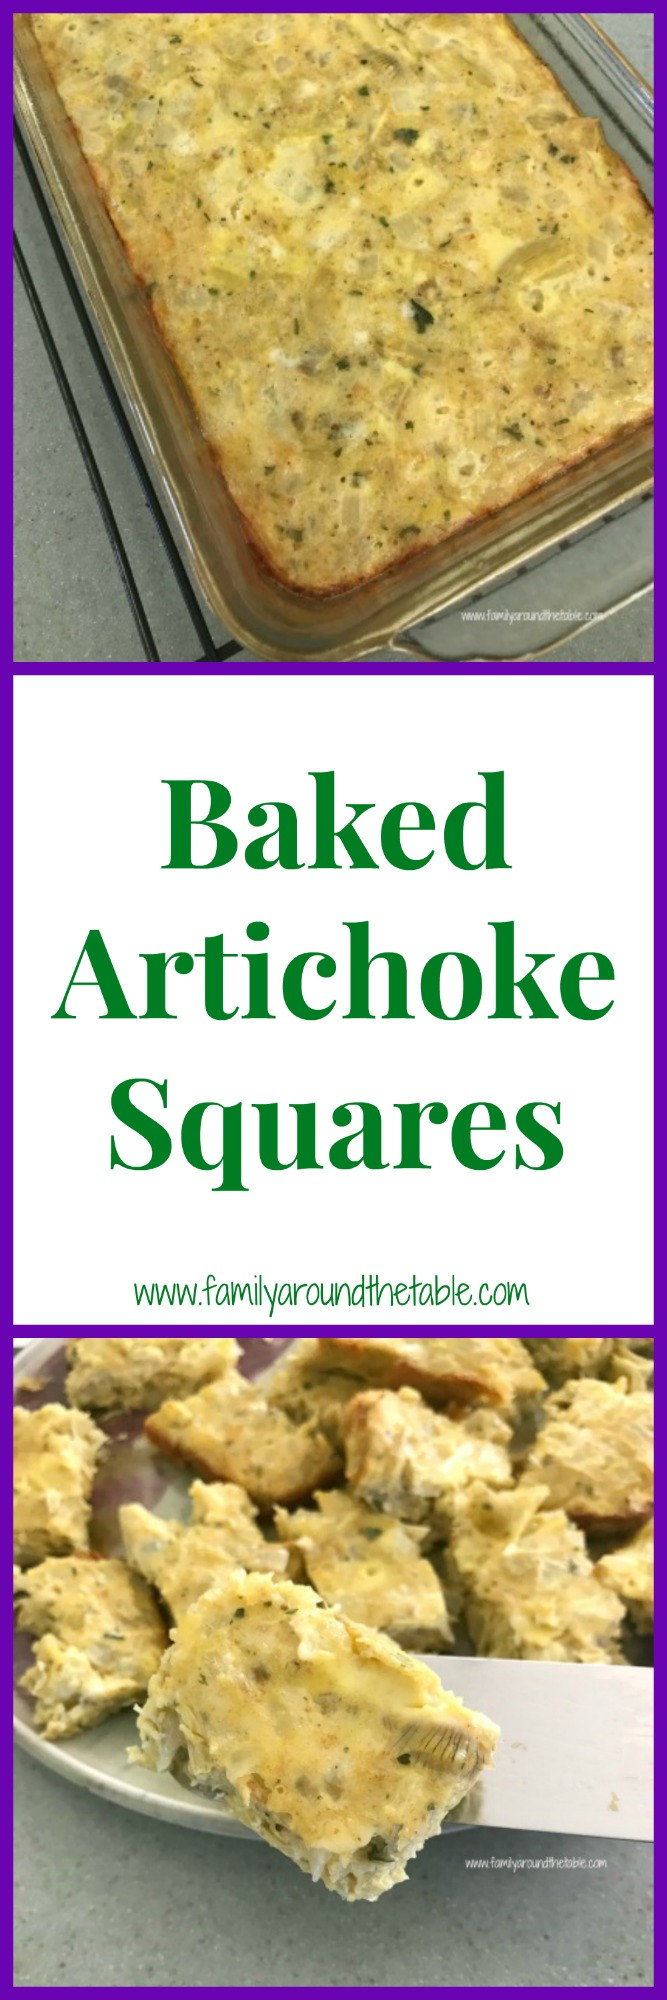 Game day or party these baked artichoke squares are a great appetizer.